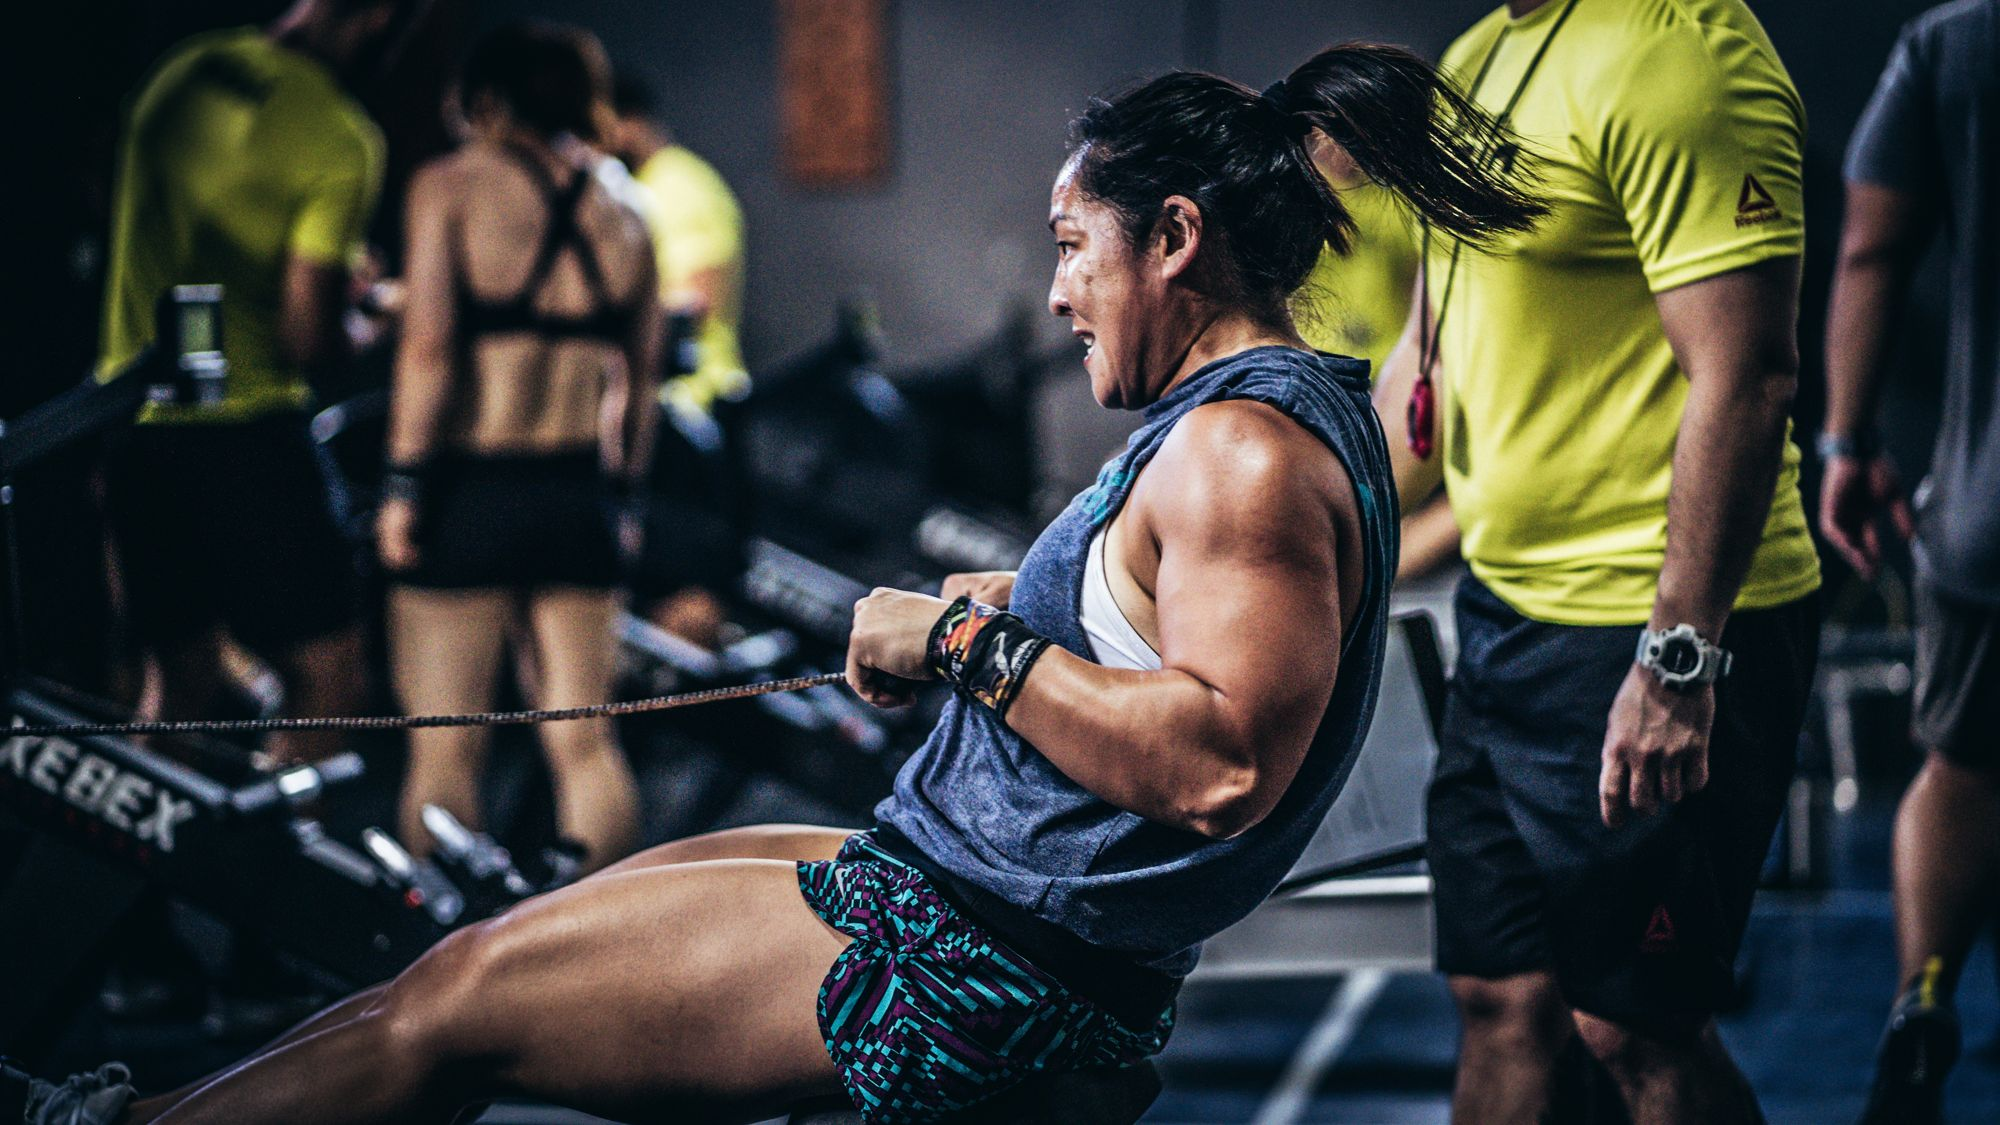 CrossFit Competition Row